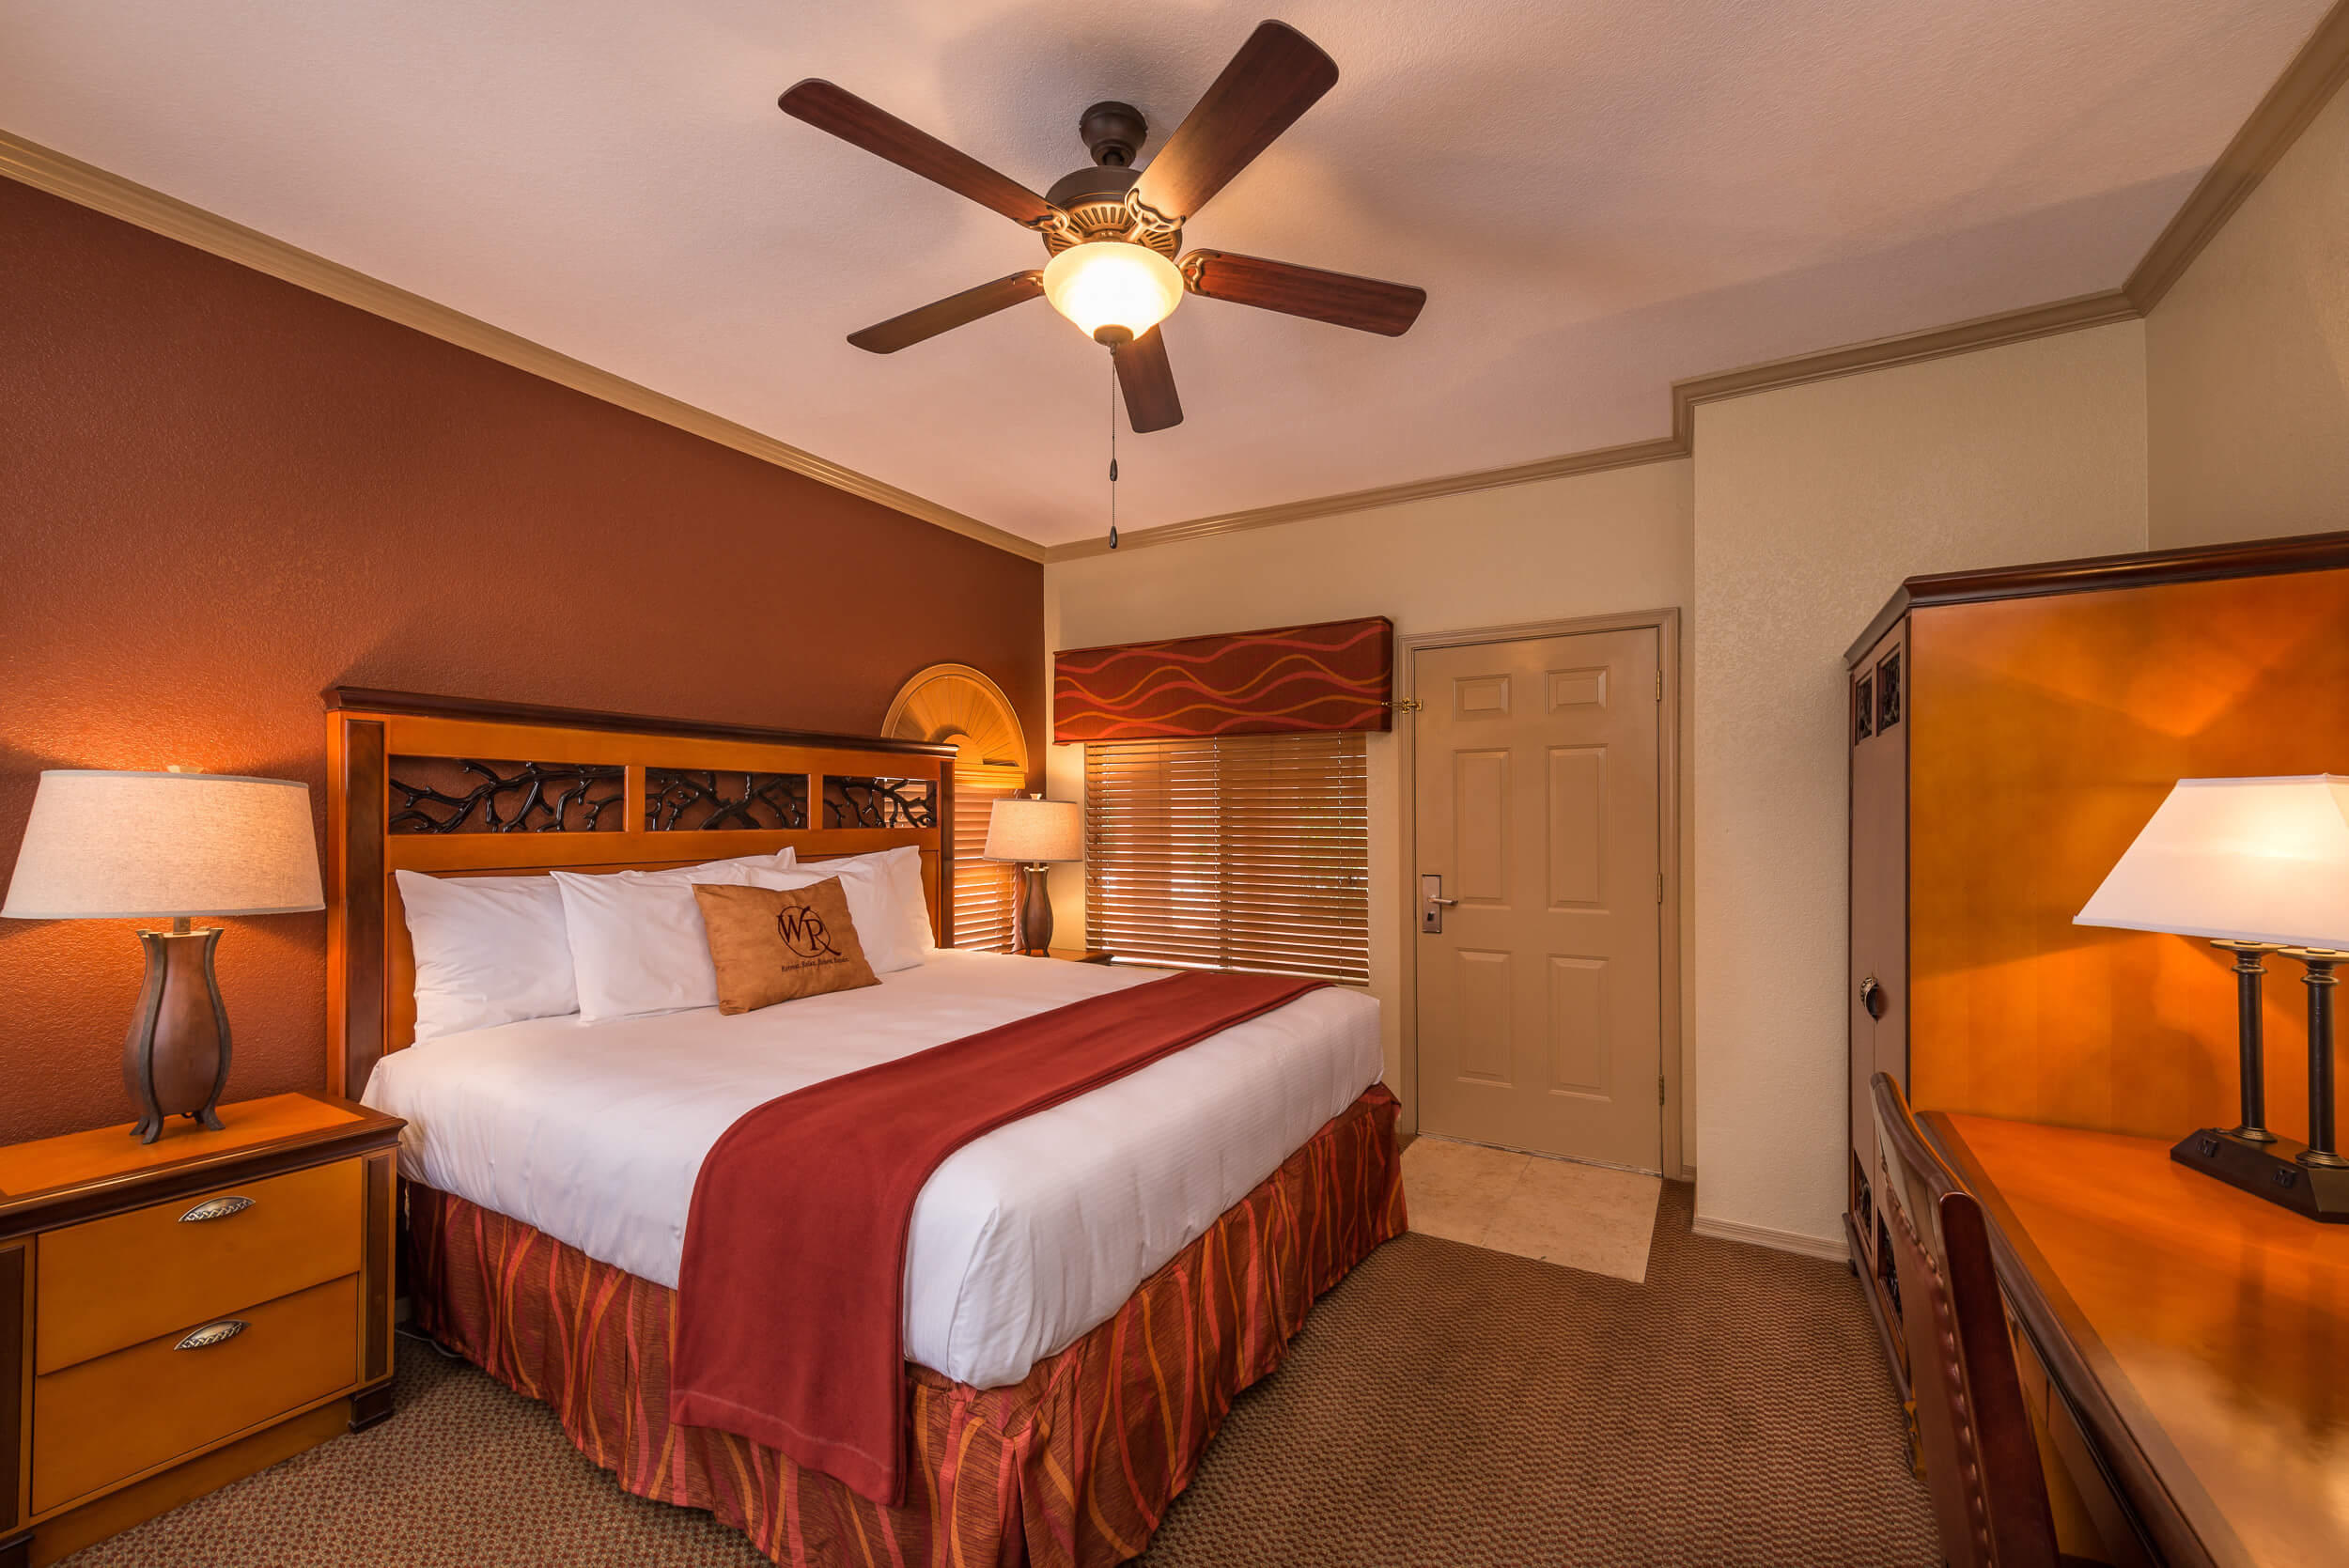 Two-Bedroom Villa at Painted Mountain golf resort Mesa AZ   Westgate Painted Mountain Golf Resort   Westgate Resorts